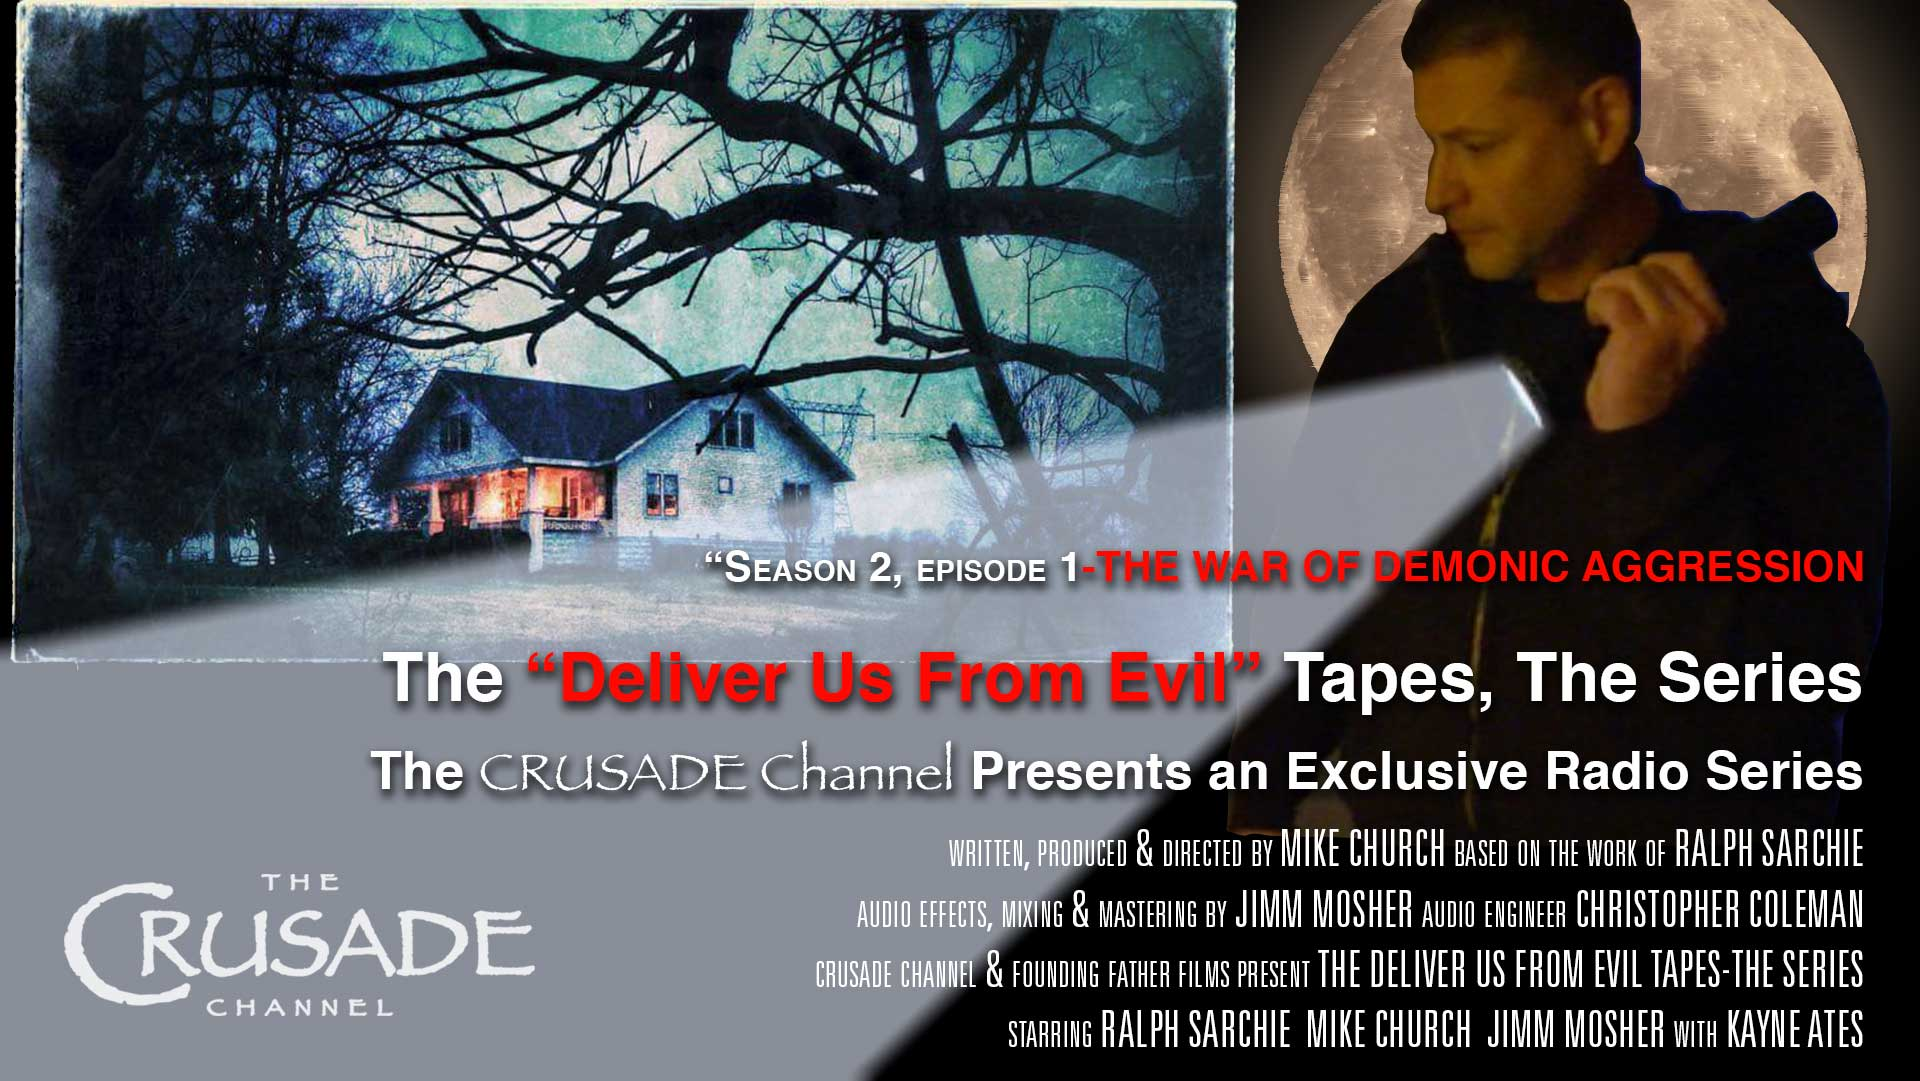 The War of Demonic Aggression - The Deliver Us From Evil Tapes Season 2 Begins!